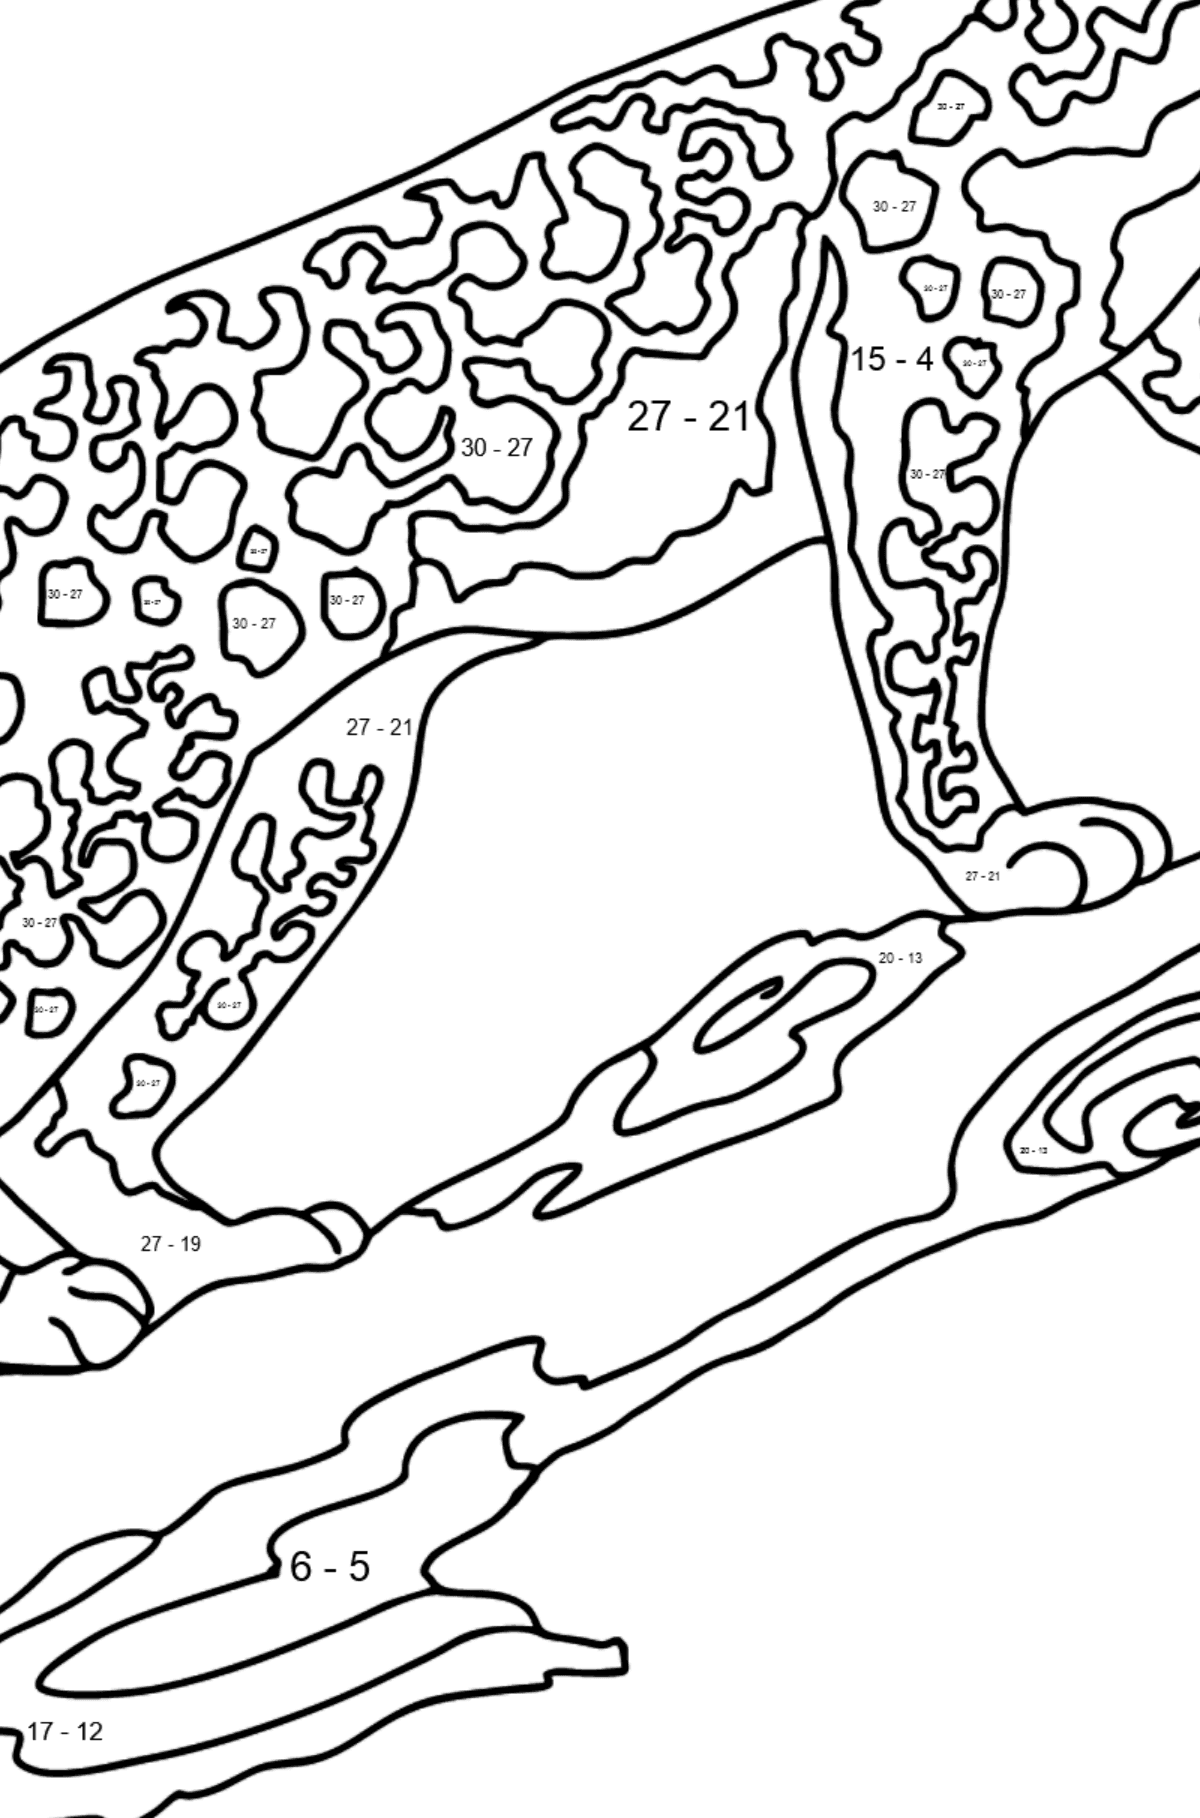 Coloring Page - A Leopard is on a Hunt - Math Coloring - Subtraction for Kids